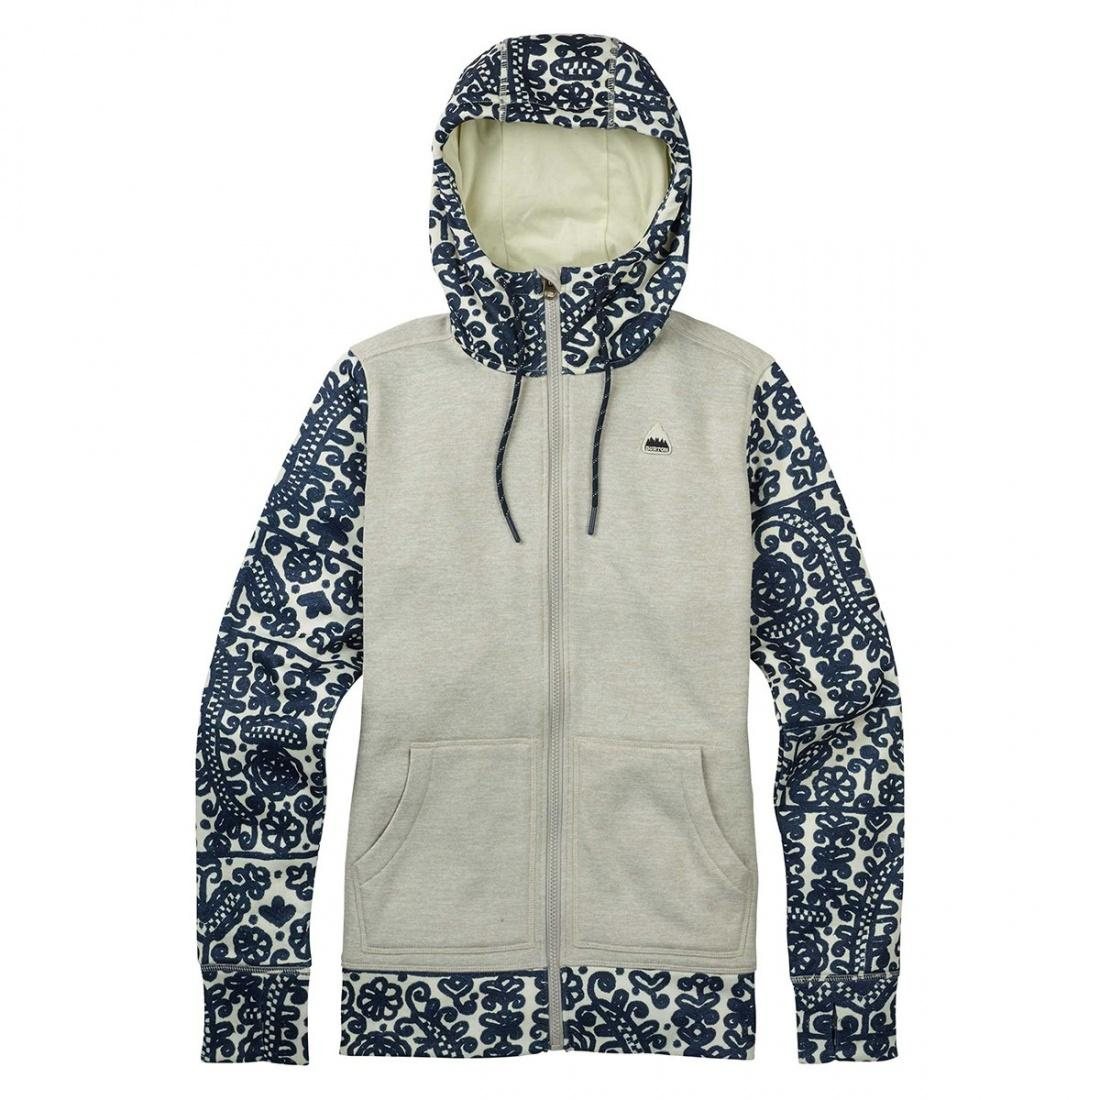 Burton Толстовка Burton Quartz Full-Zip Dove Heather, , , FW18 M burton футболка burton deadwood rec heather night rider